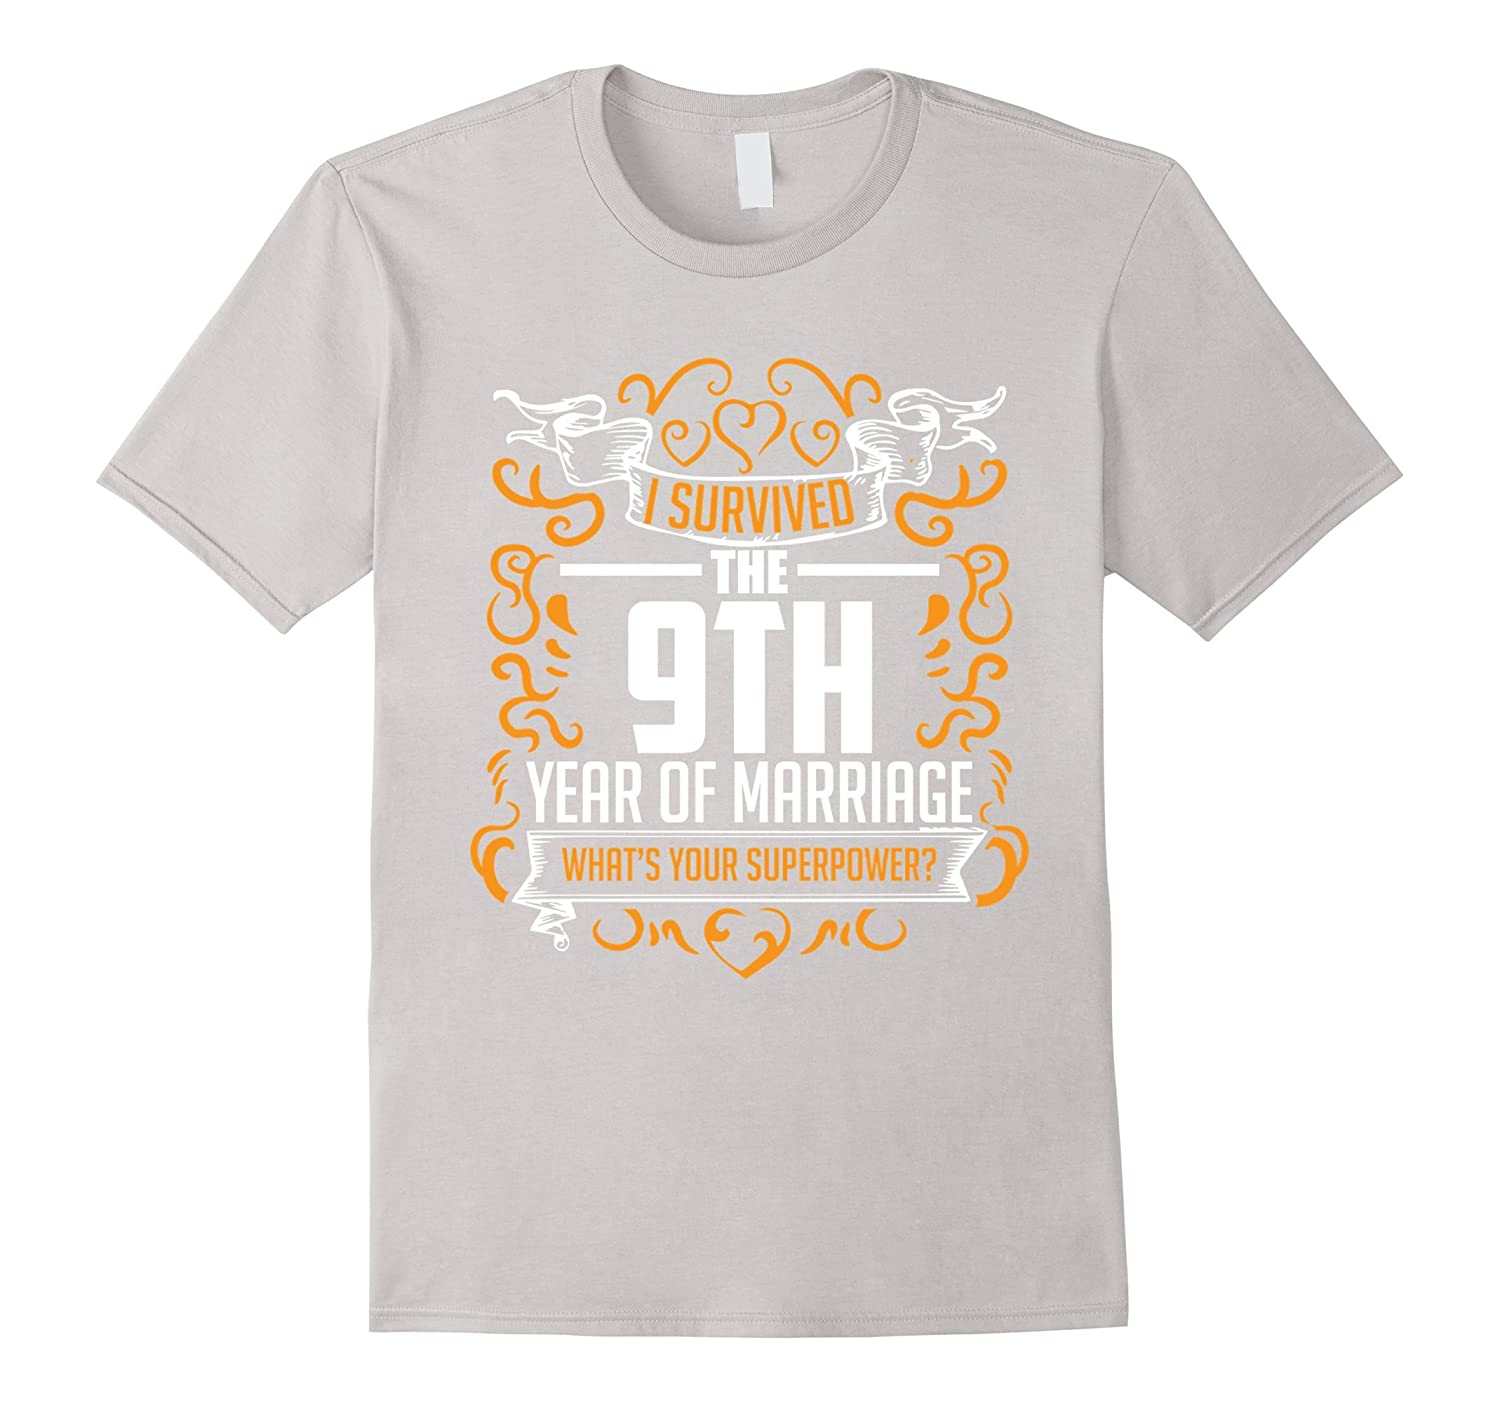 9th Year Wedding Anniversary Gifts: 9th Wedding Anniversary Gifts 9 Year T Shirt For Her Him